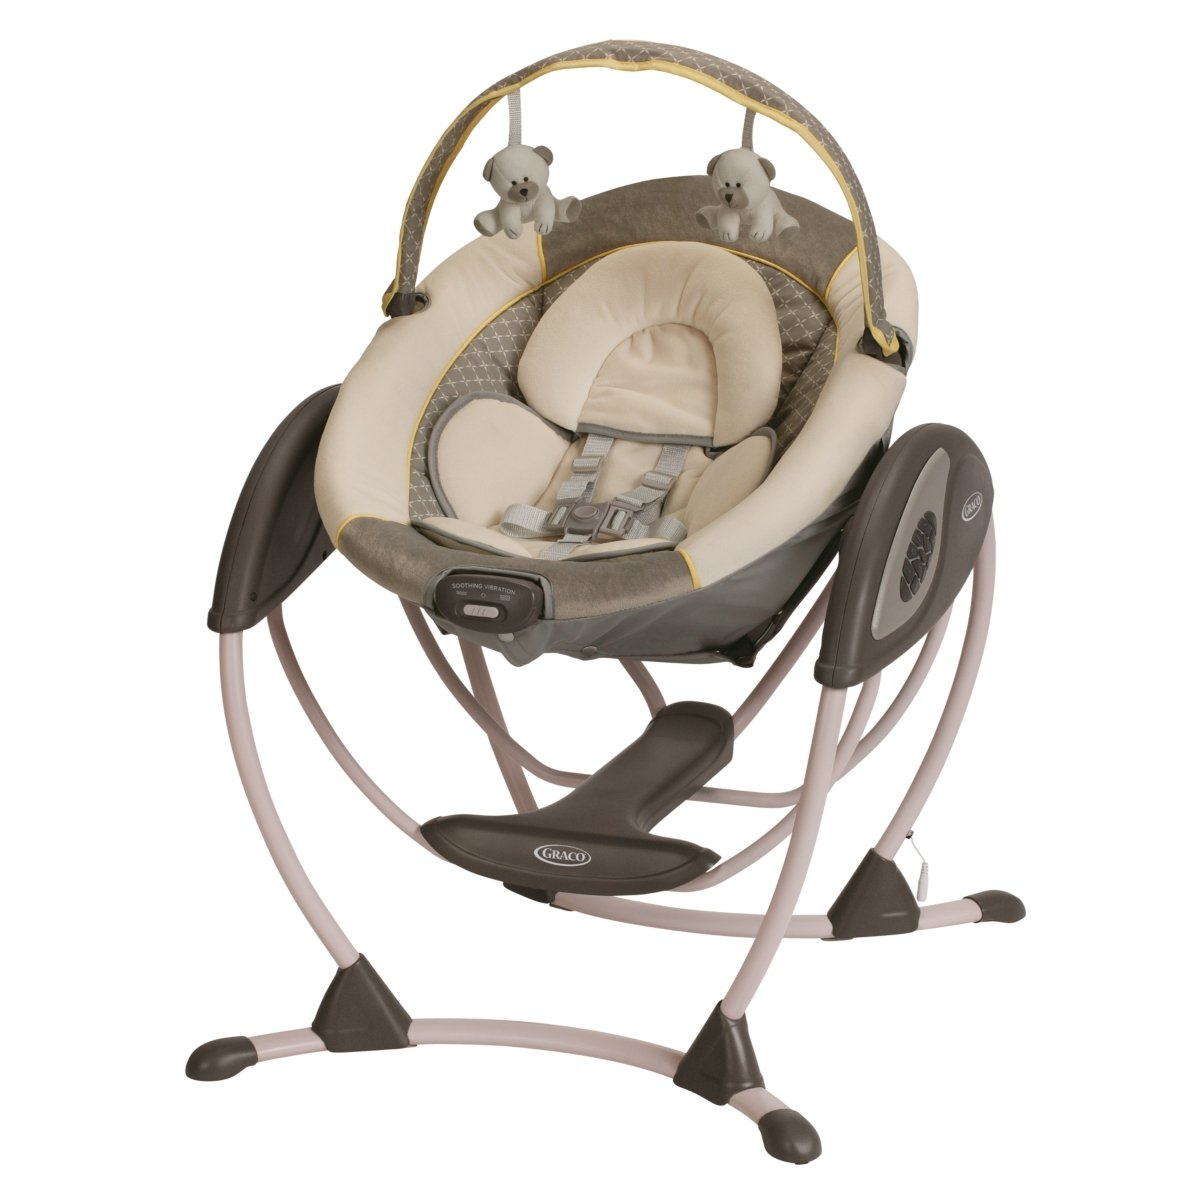 Graco 2 In 1 Glider Premiere Swing Baby Gear And Accessories